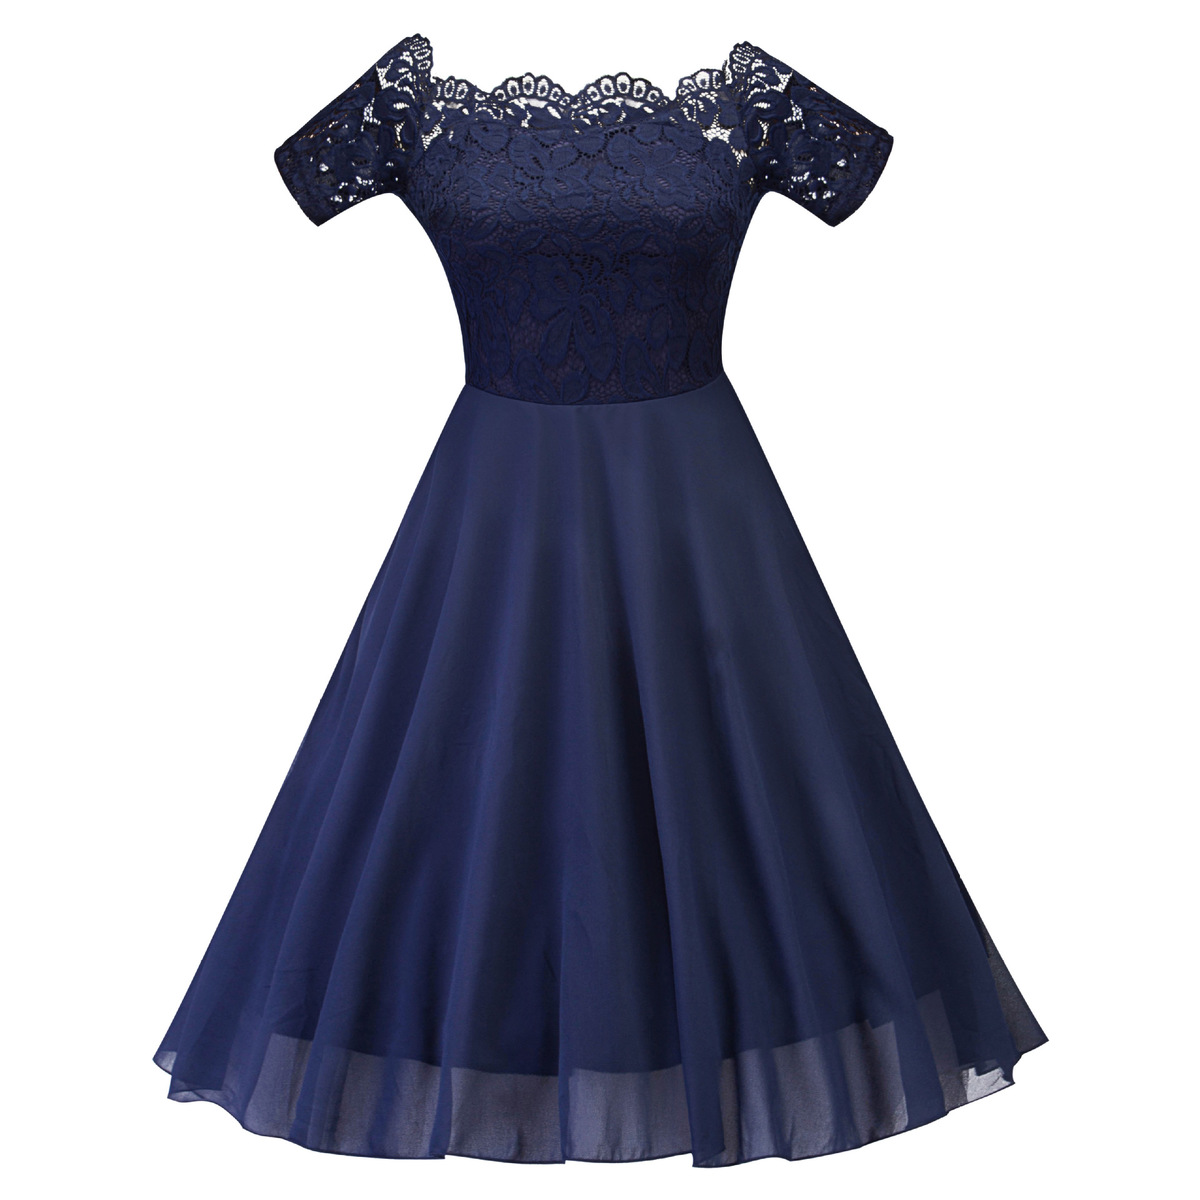 Short Party Dresses Navy Blue Chiffon Lace Short Sleeves Homecoming Dresses New Arrival Girls A-line Sexy Graduation Dresses